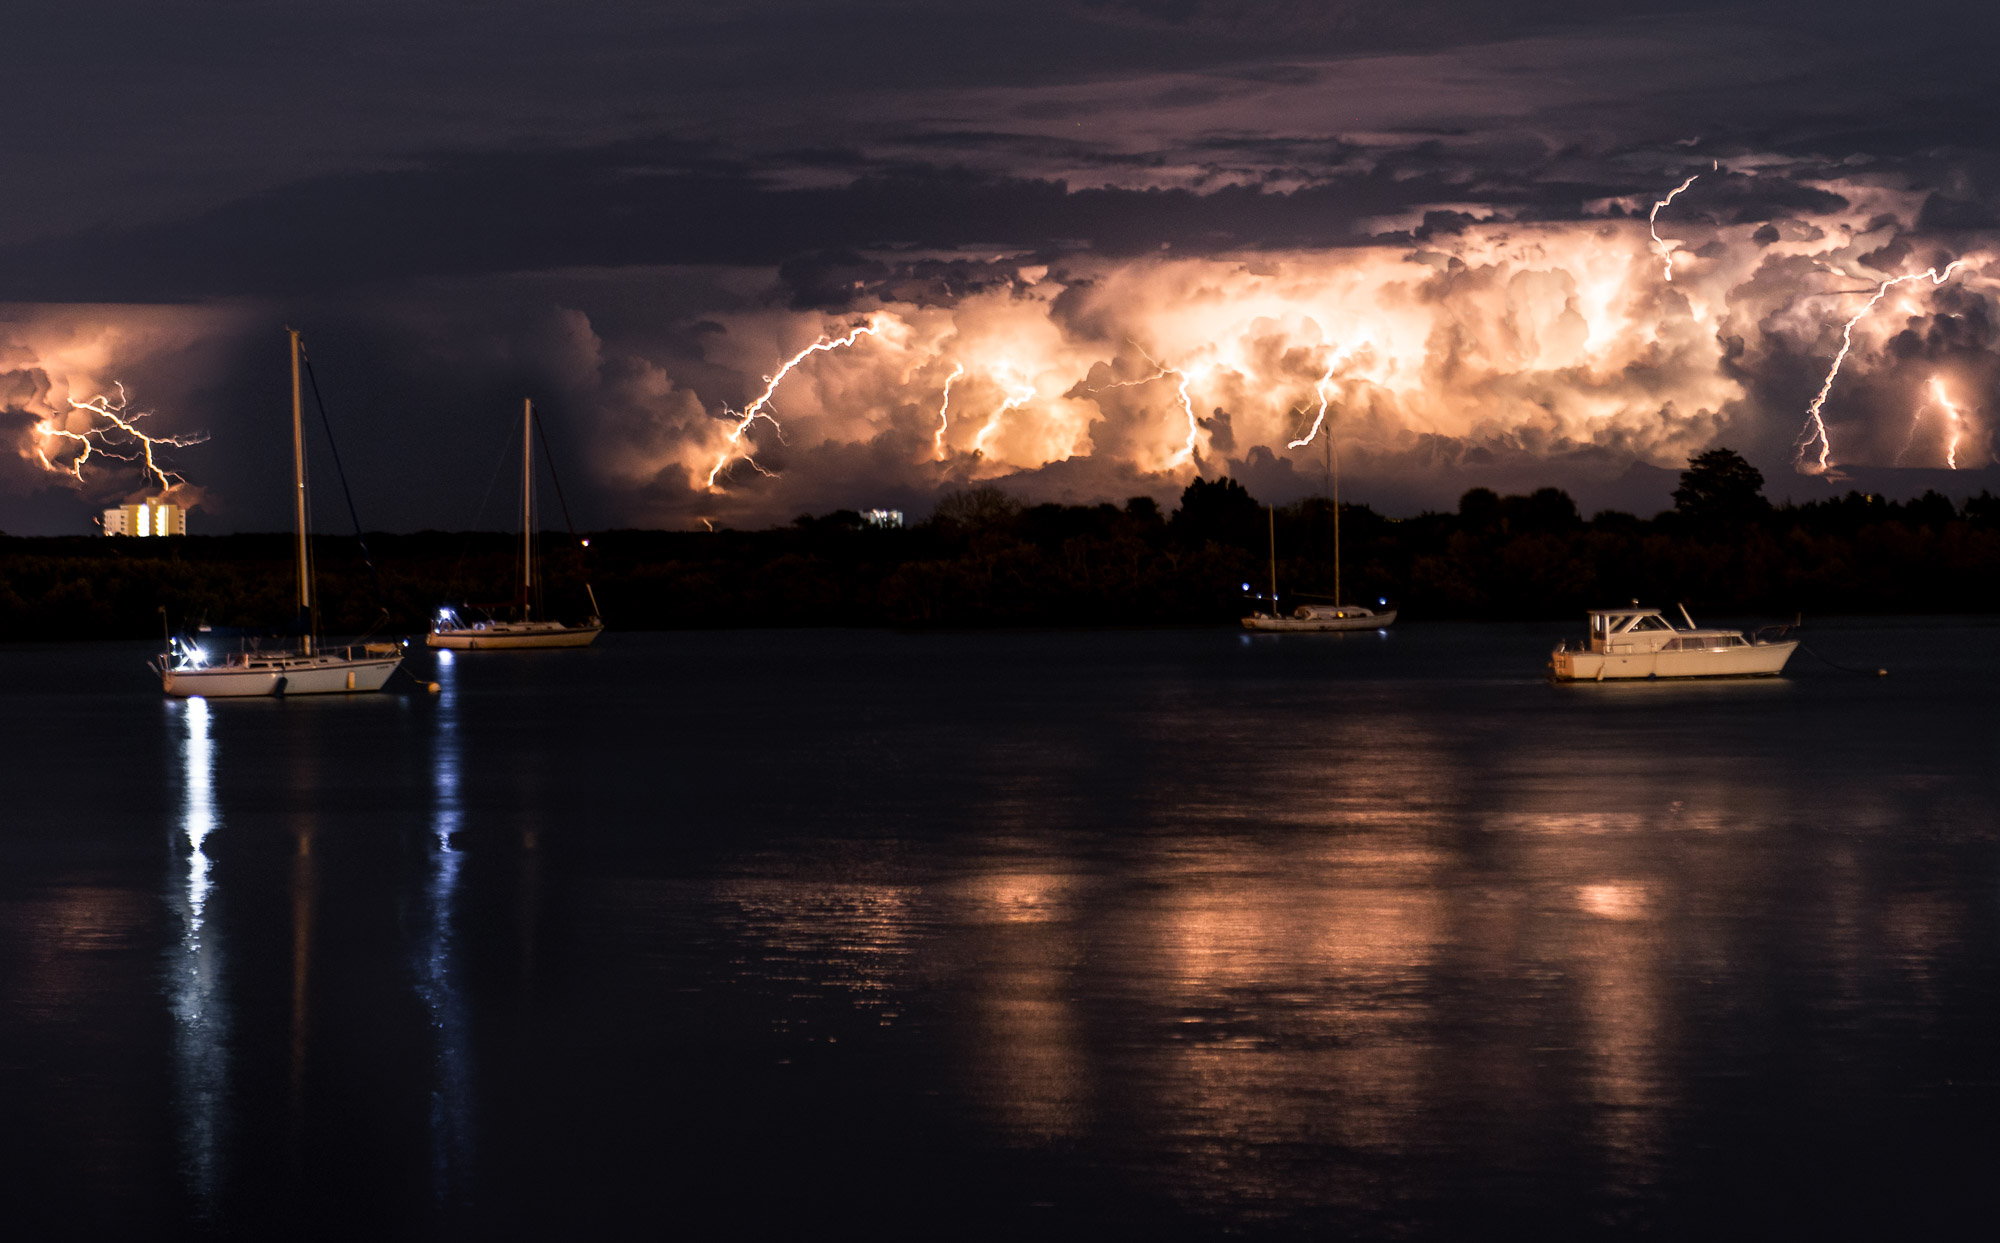 Spectacular lightning over the Halifax River - New Smyrna Beach, Florida